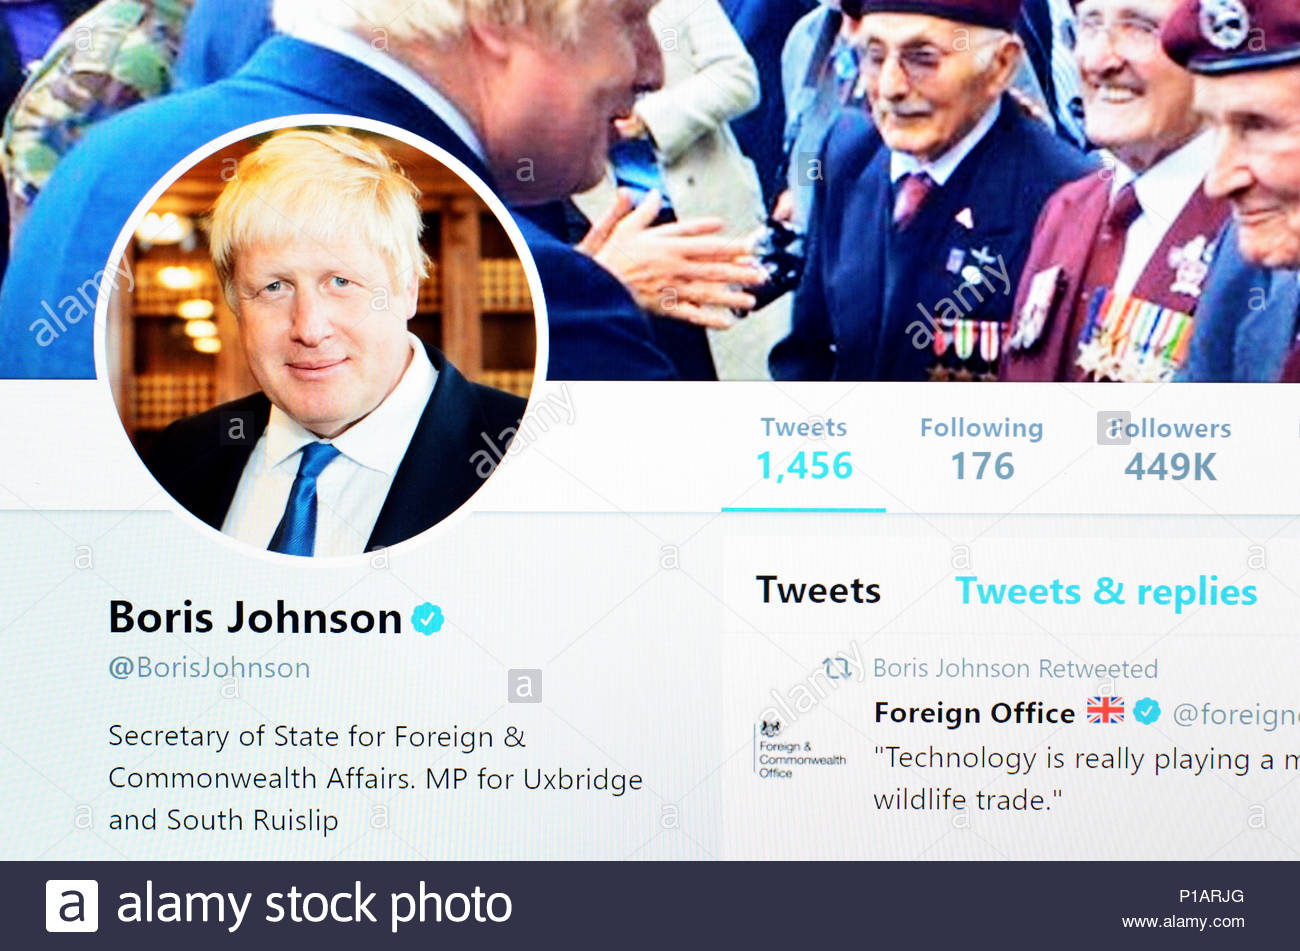 Boris Johnson compte Twitter home page (Juin 2018) Photo Stock